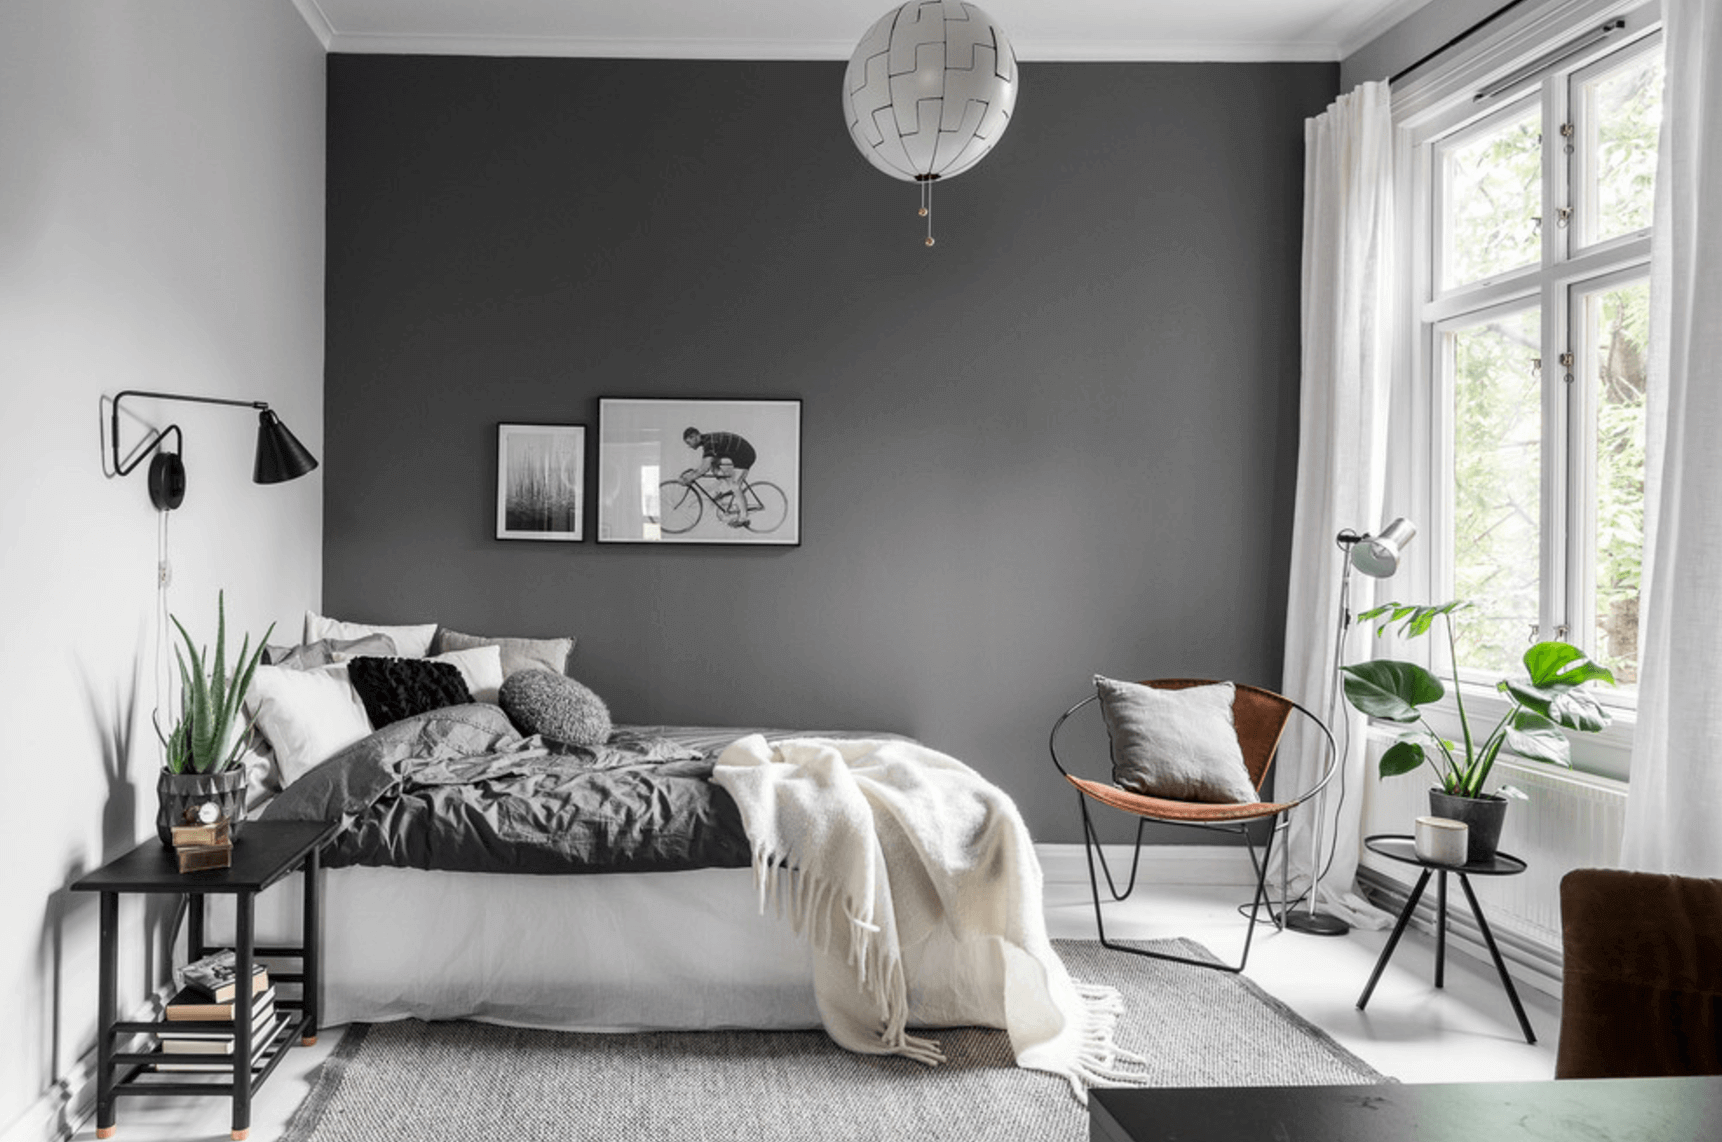 Minimalist D Cor Is The Perfect Statement In This Grey Bedroom Ideas 23 Best And Designs For 2018